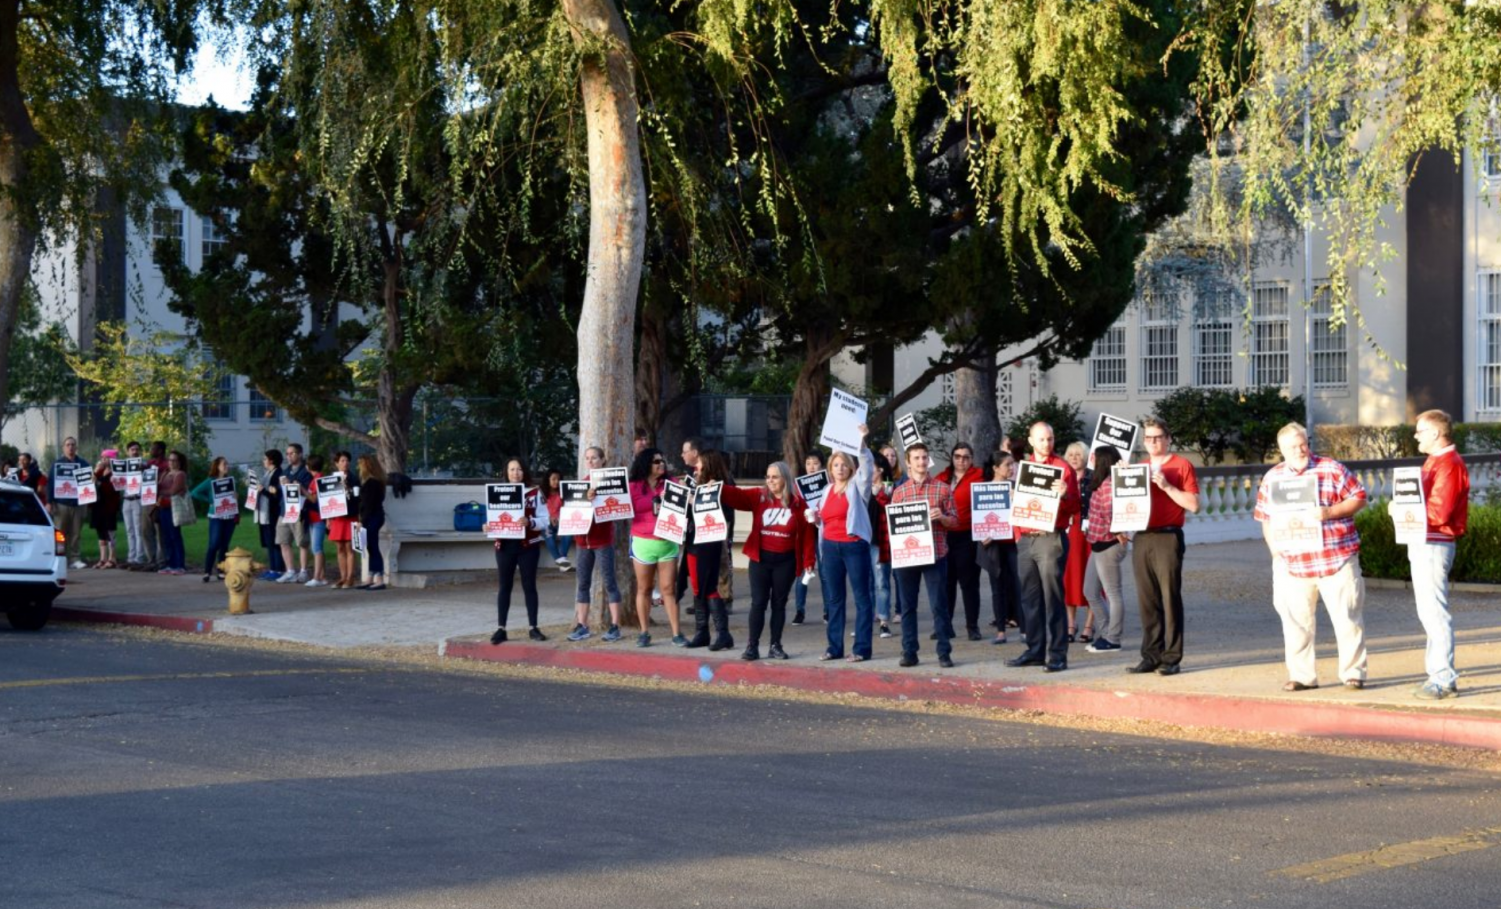 Van Nuys' teachers picket in front of the school. A repeat of this scenario is highly probable on January 14.